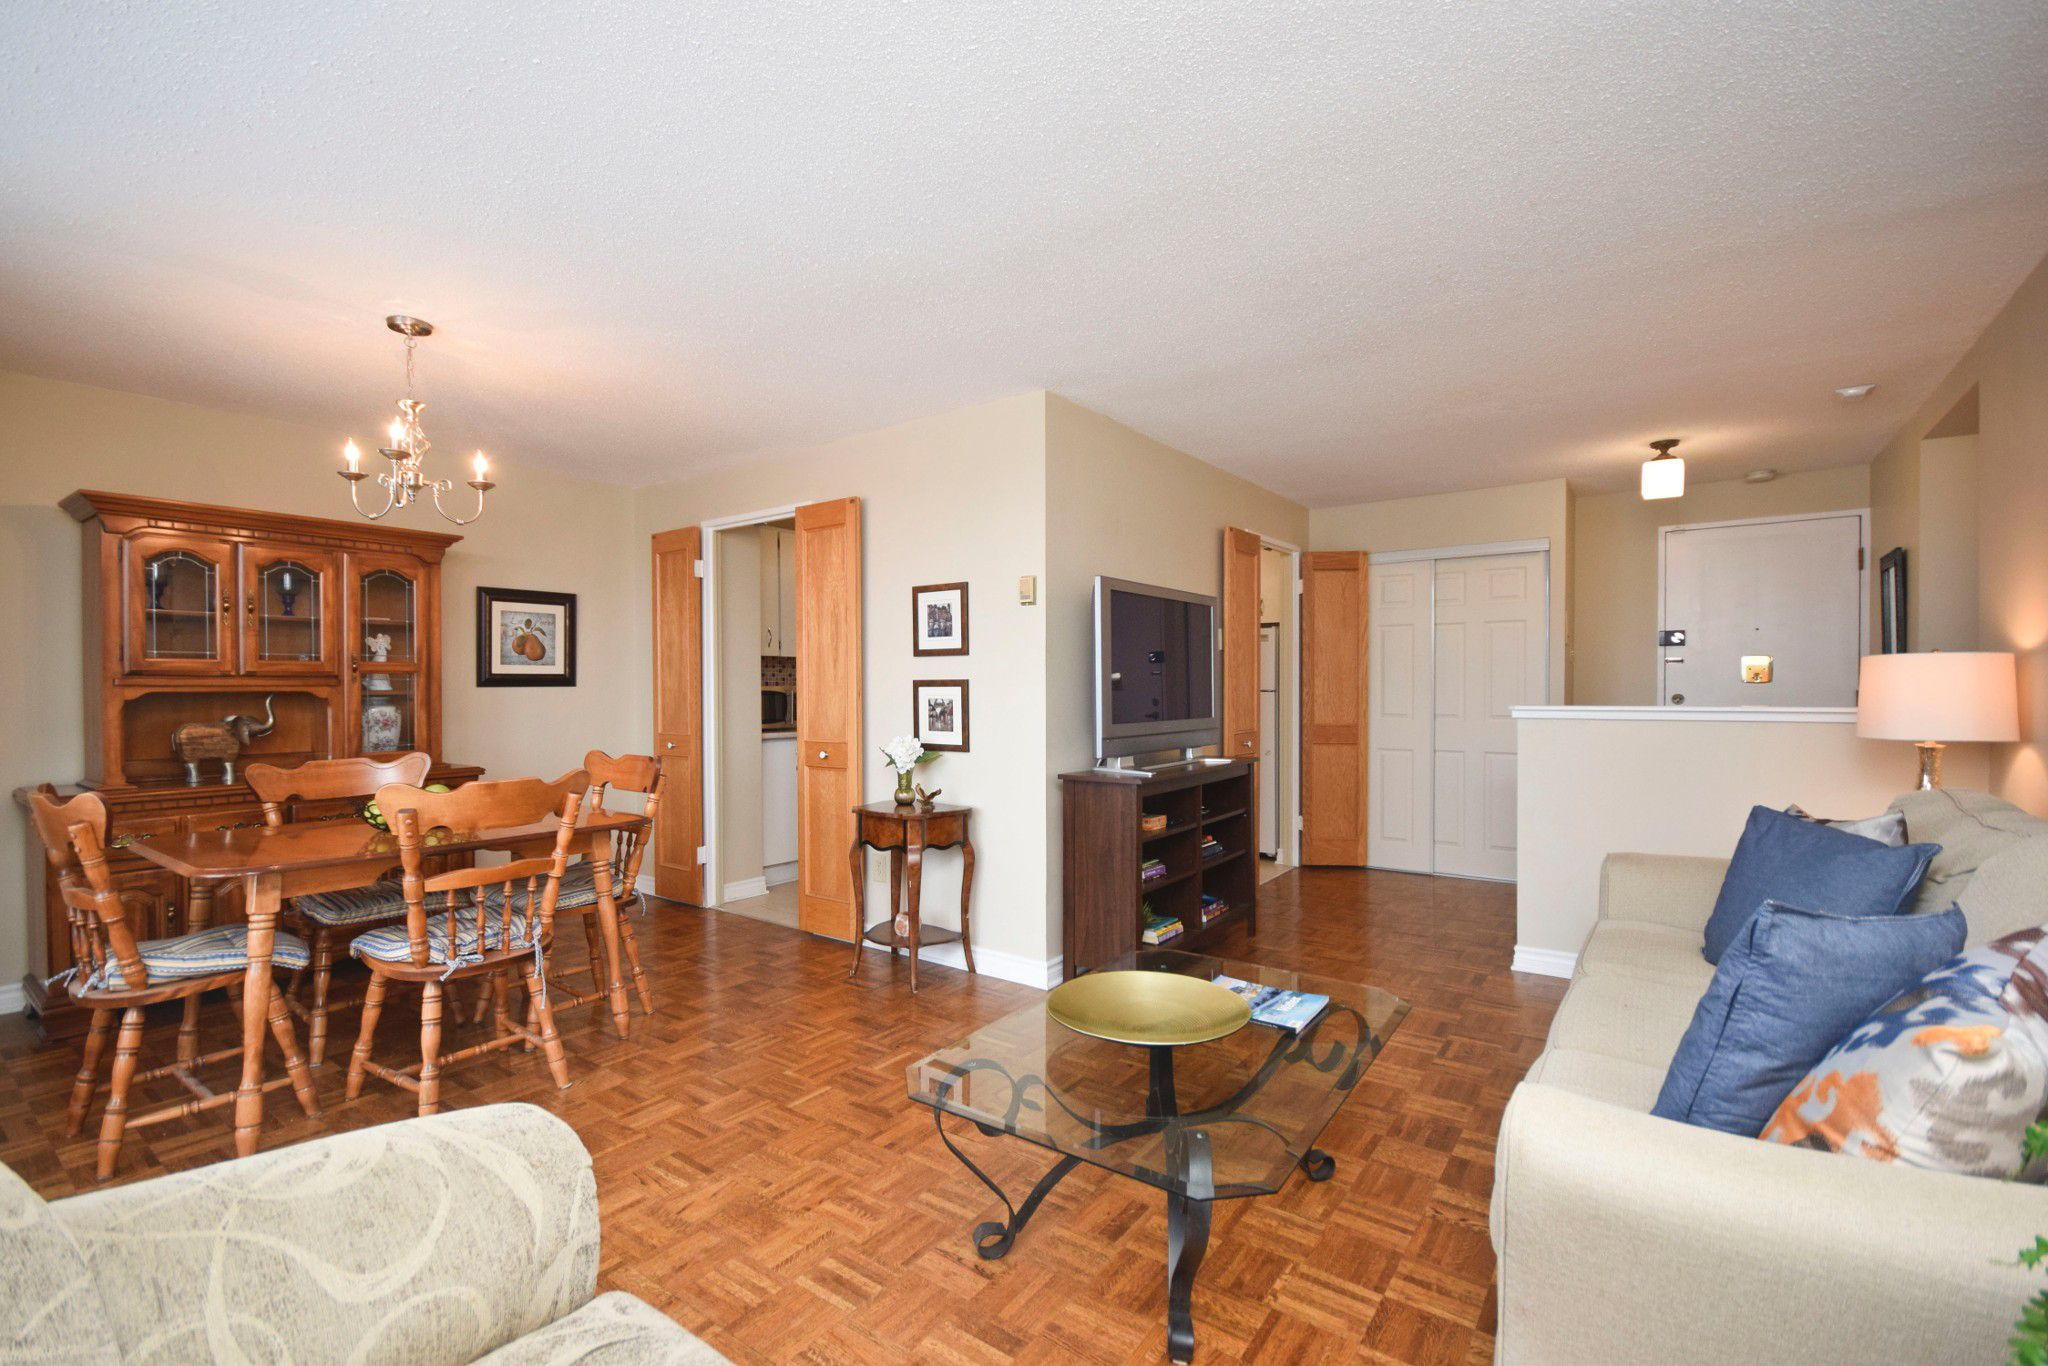 Photo 16: Photos: 515 1465 BASELINE Road in Ottawa: Copeland Park House for sale : MLS®# 1133550